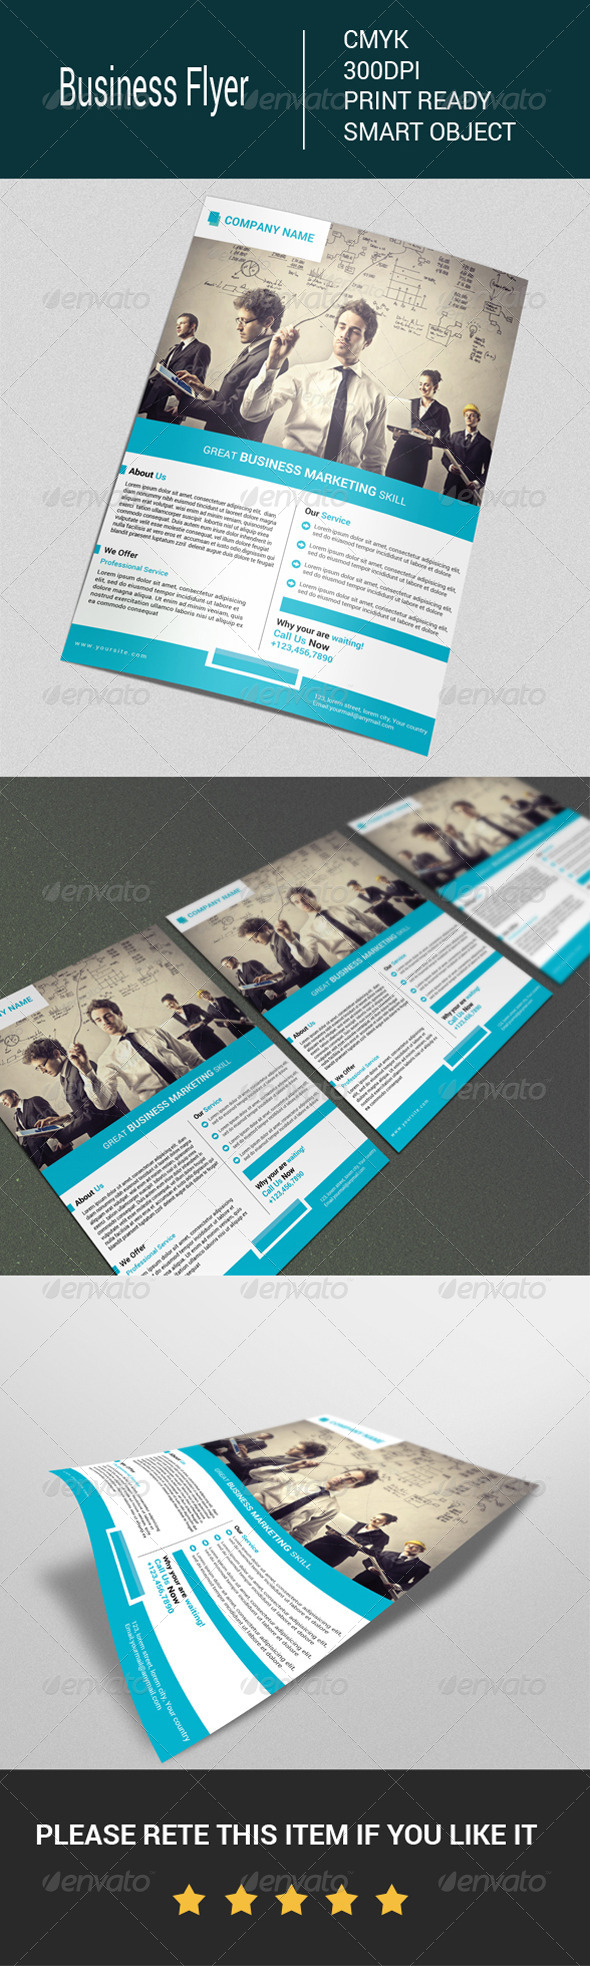 GraphicRiver Business Flyer Template 7675794